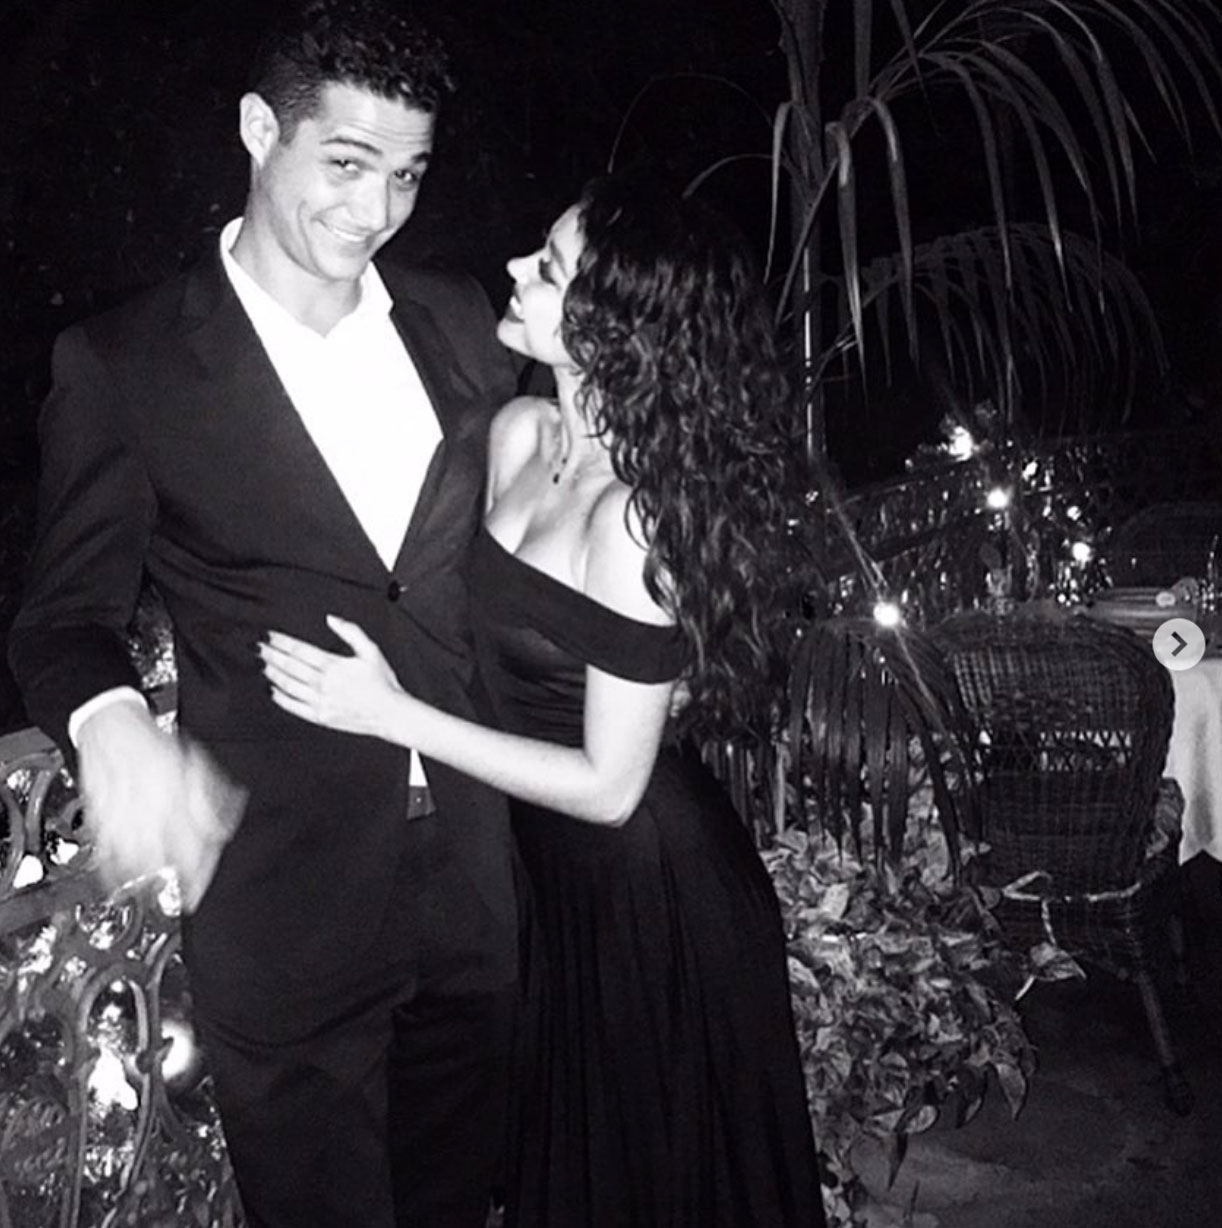 Sarah Hyland wishes Wells Adams a happy birthday